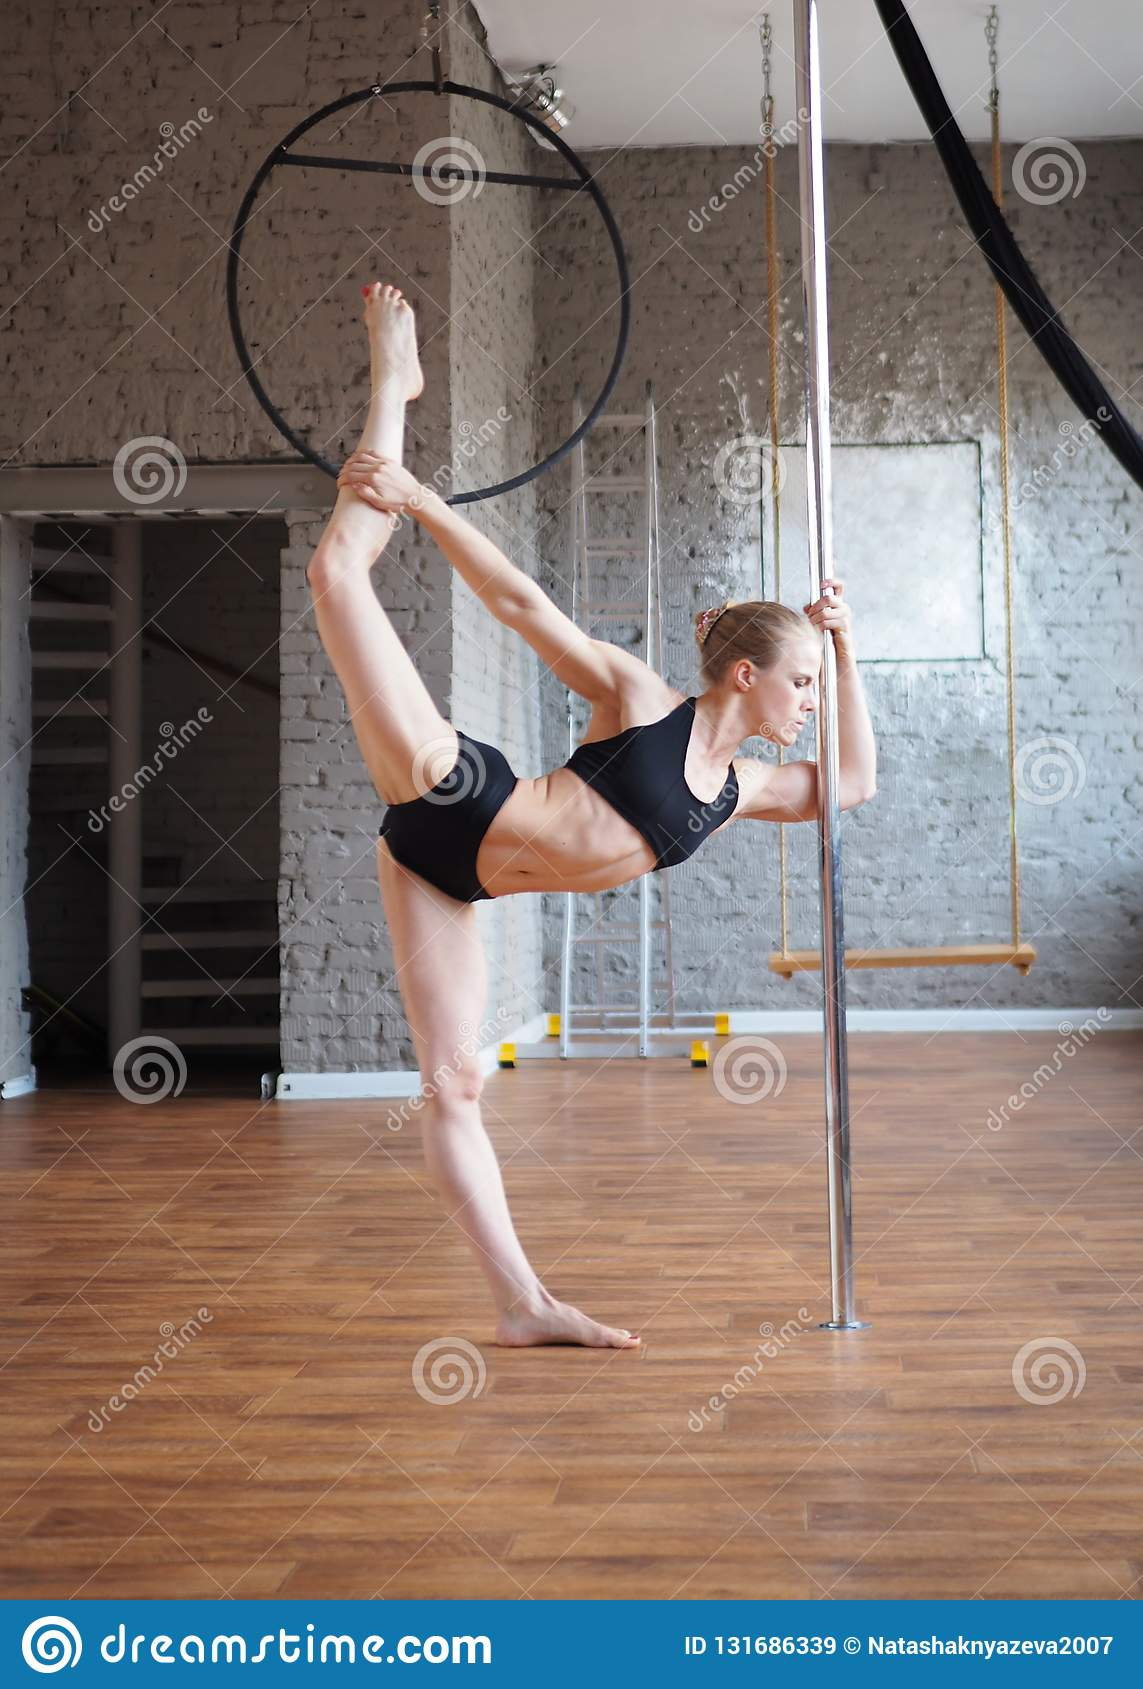 Pole dancing without panties